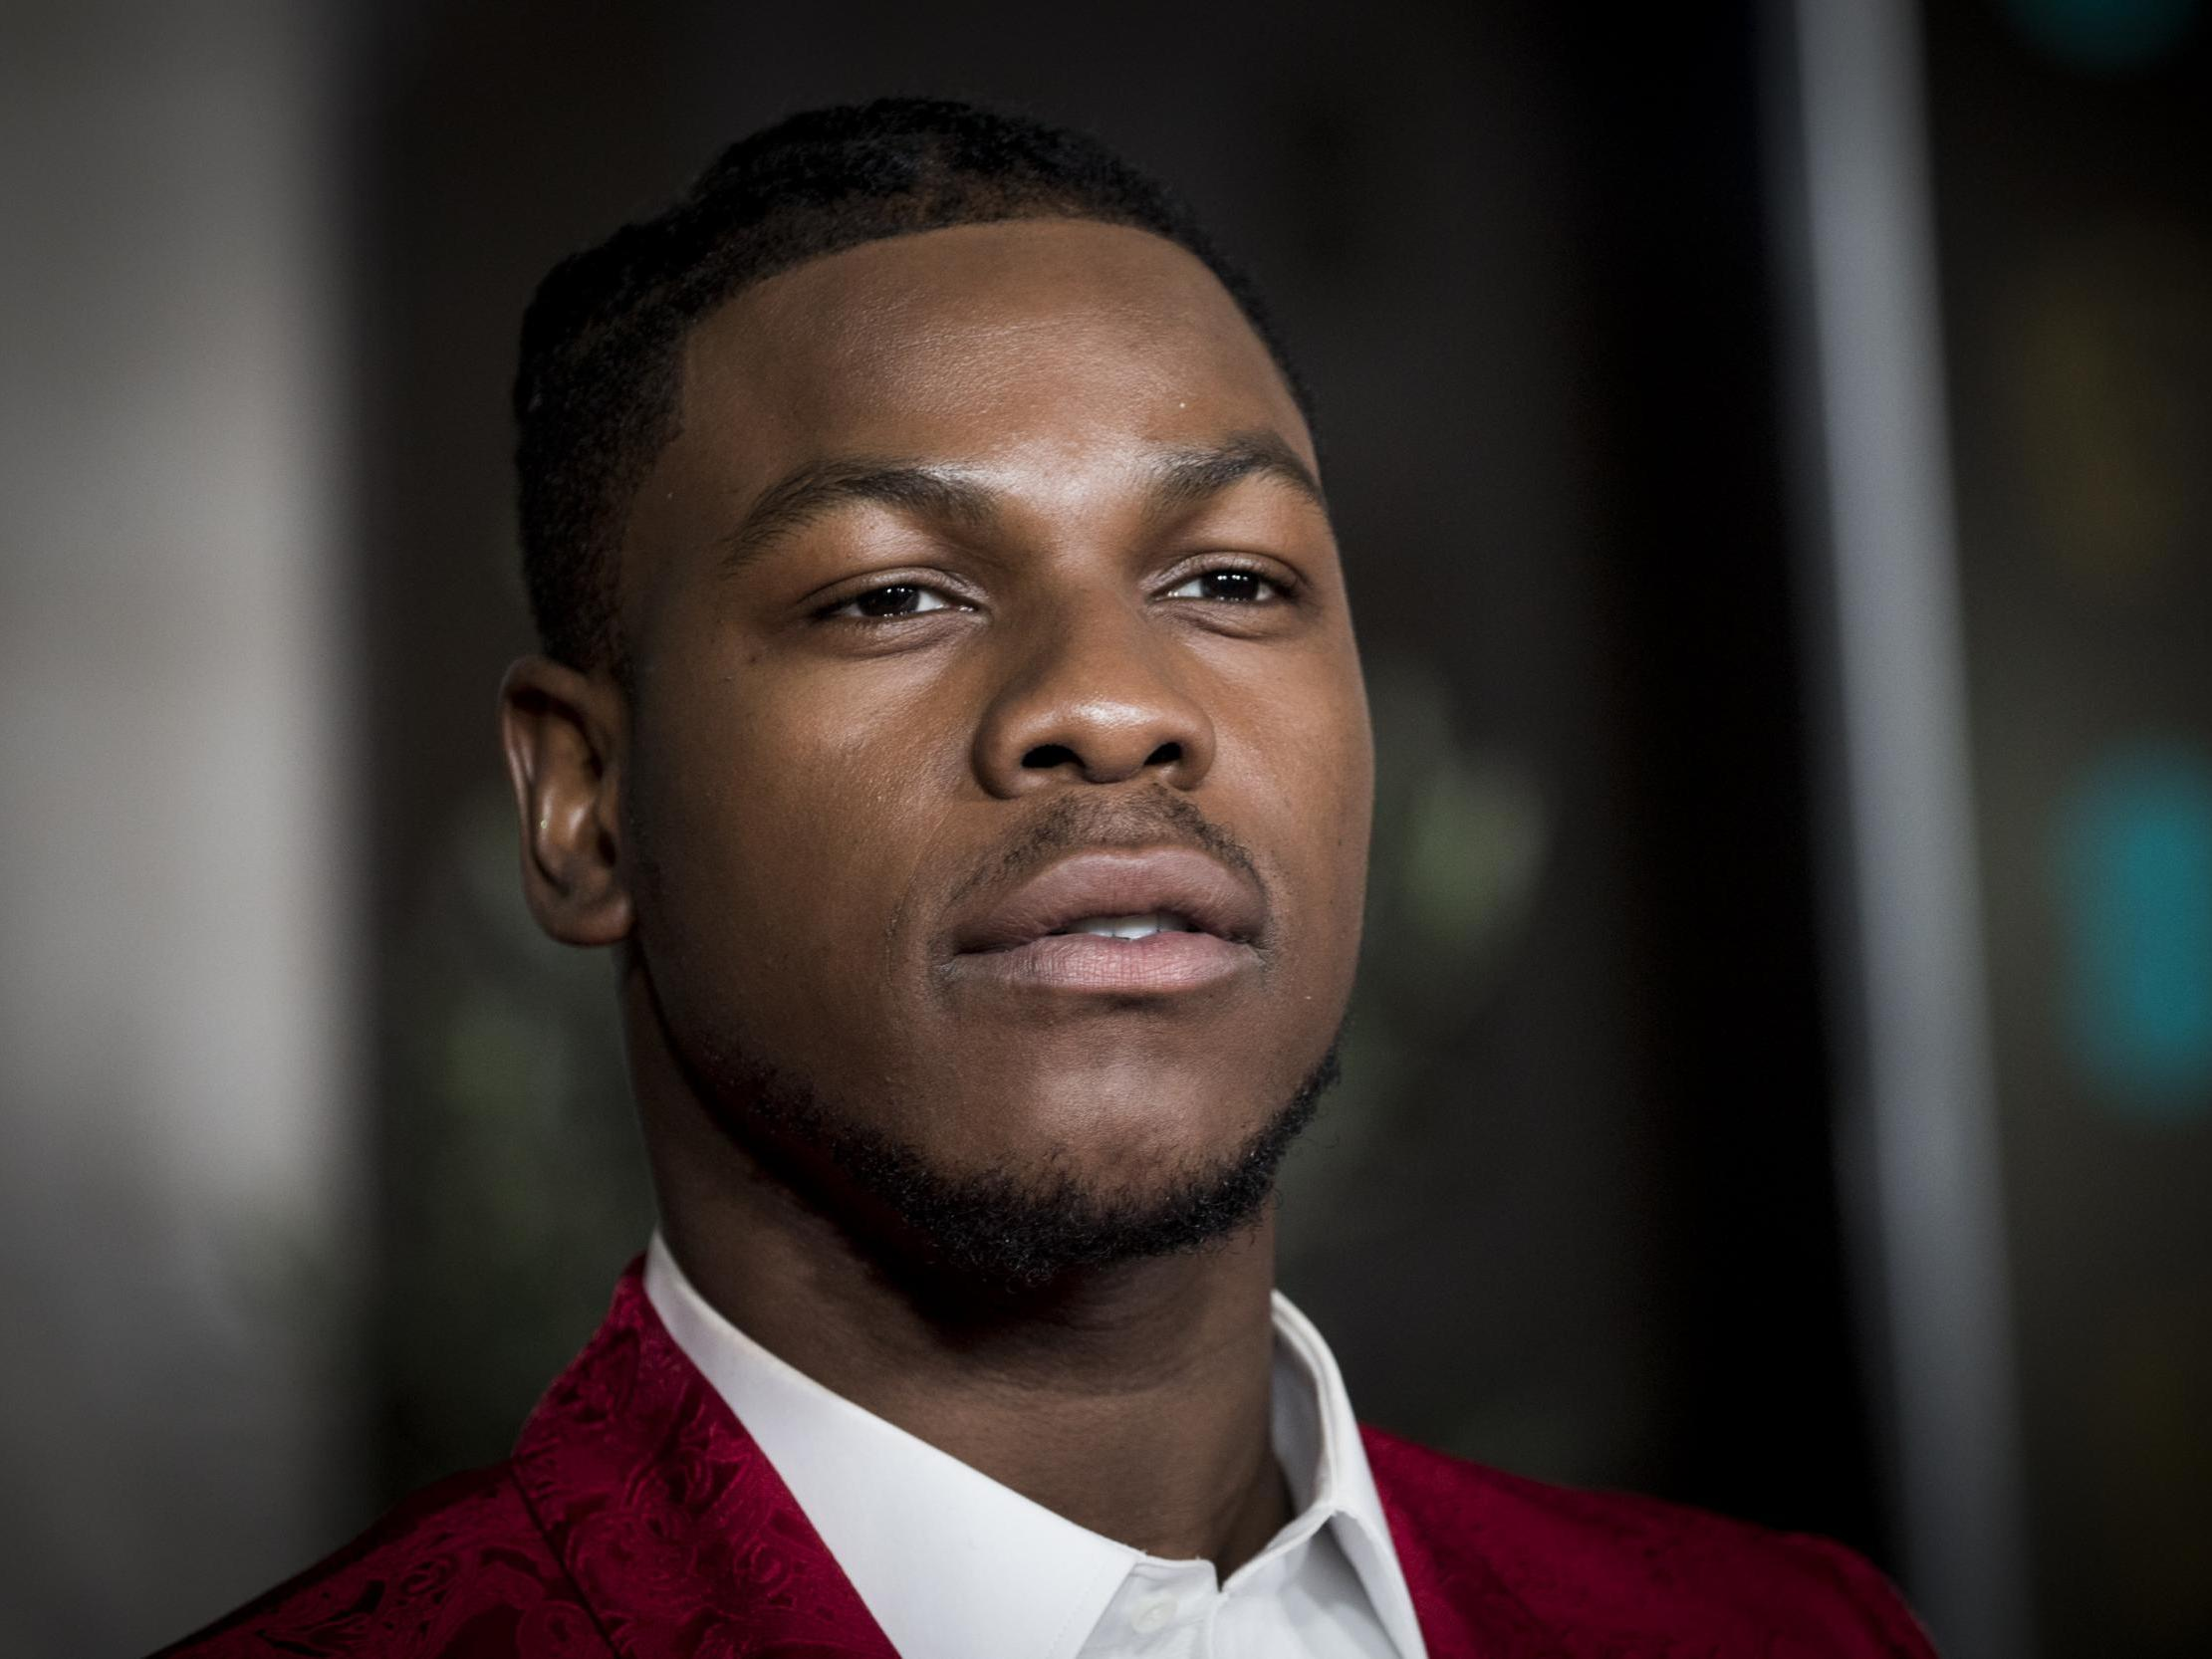 'I said what I said': John Boyega defends explicit anti-racism social media posts